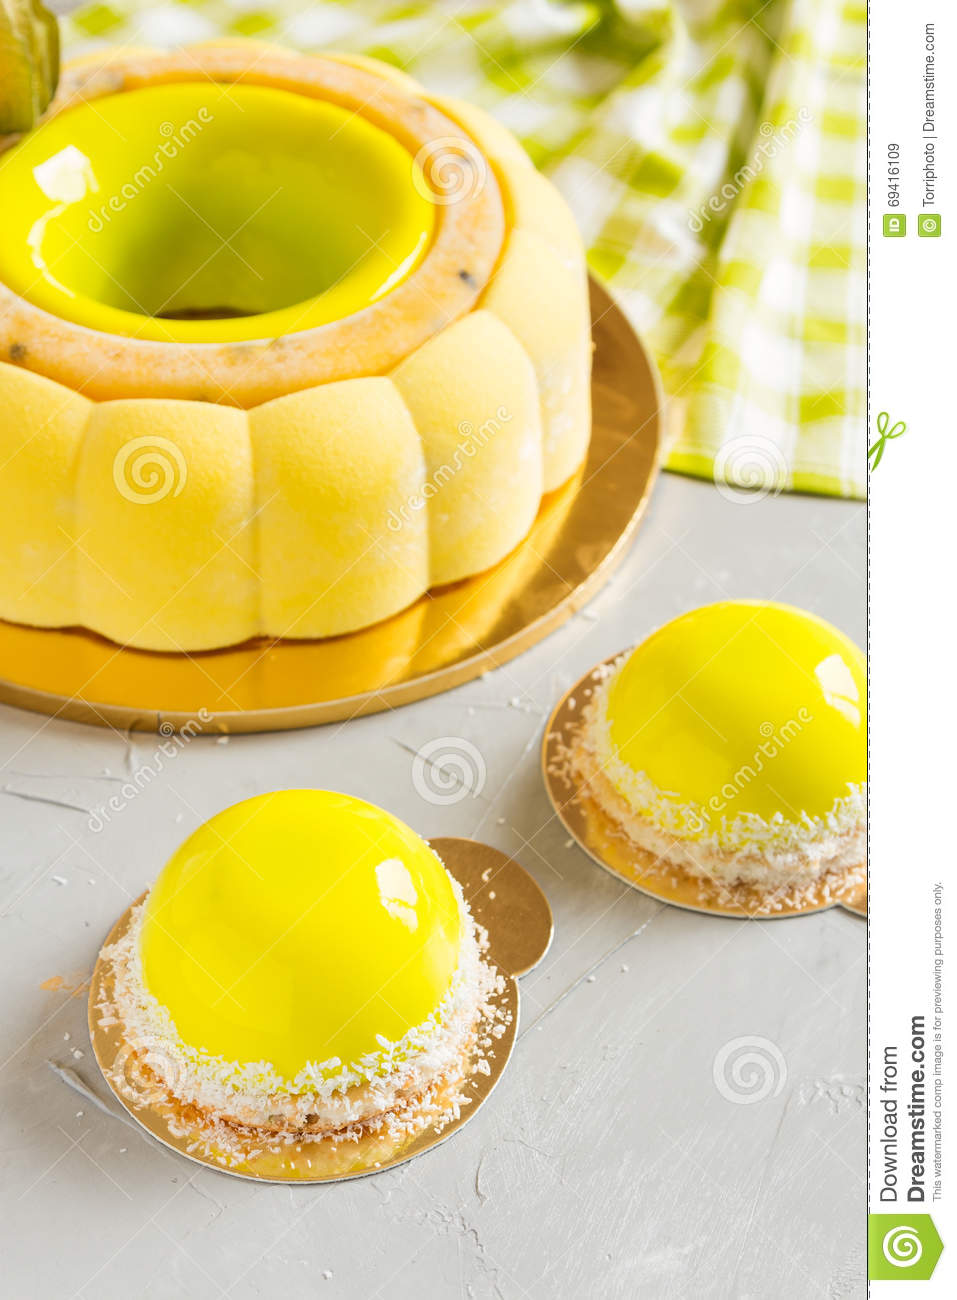 French Pastry With Yellow Mirror Glaze Stock Photo Image